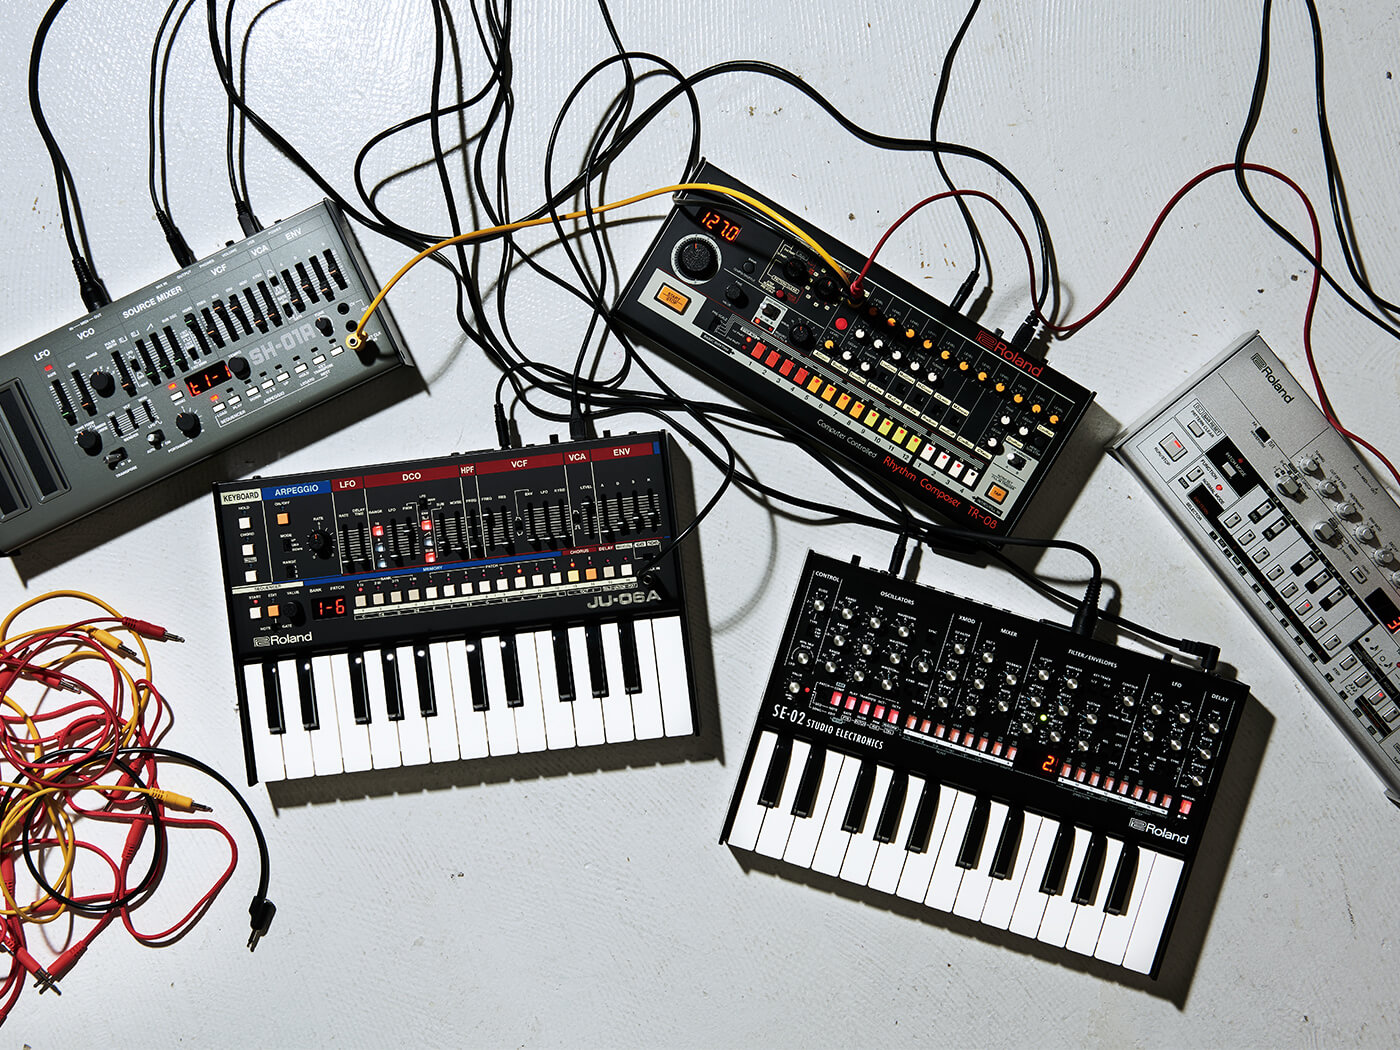 The SH-01, JU-06A, TR-08, SE-02 and TB-03 together